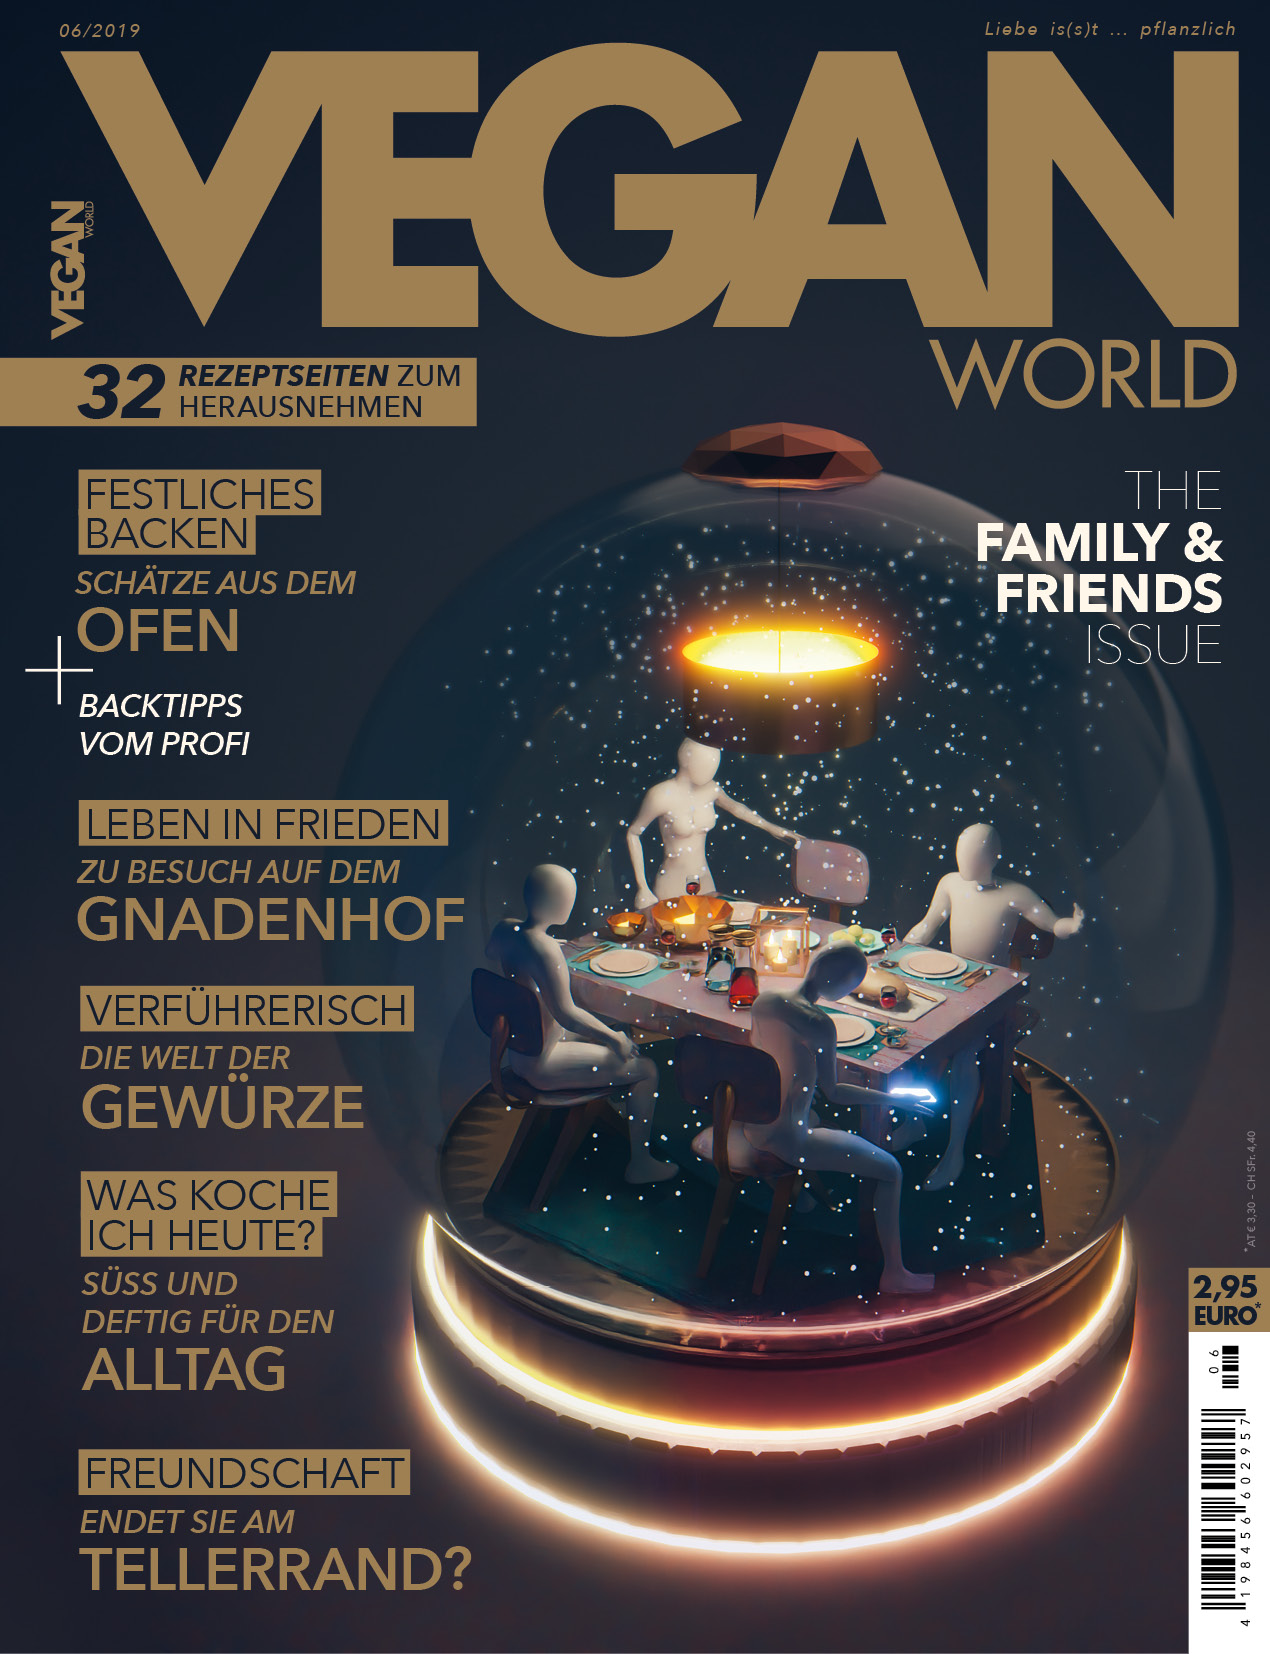 Vegan World 05 2019